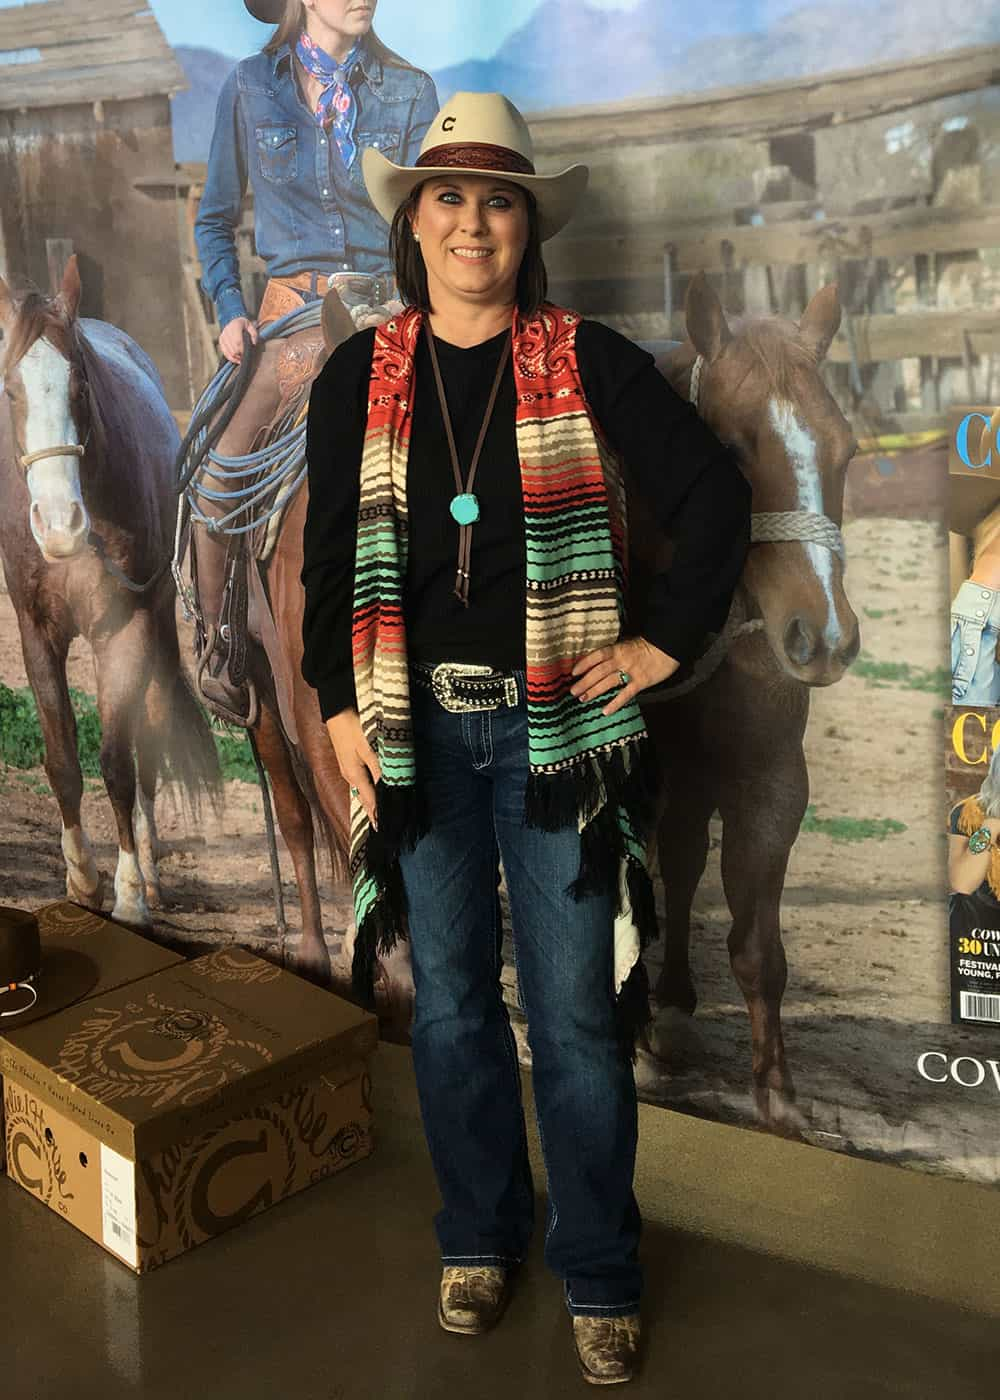 american rodeo street style 2020 cowgirl magazine